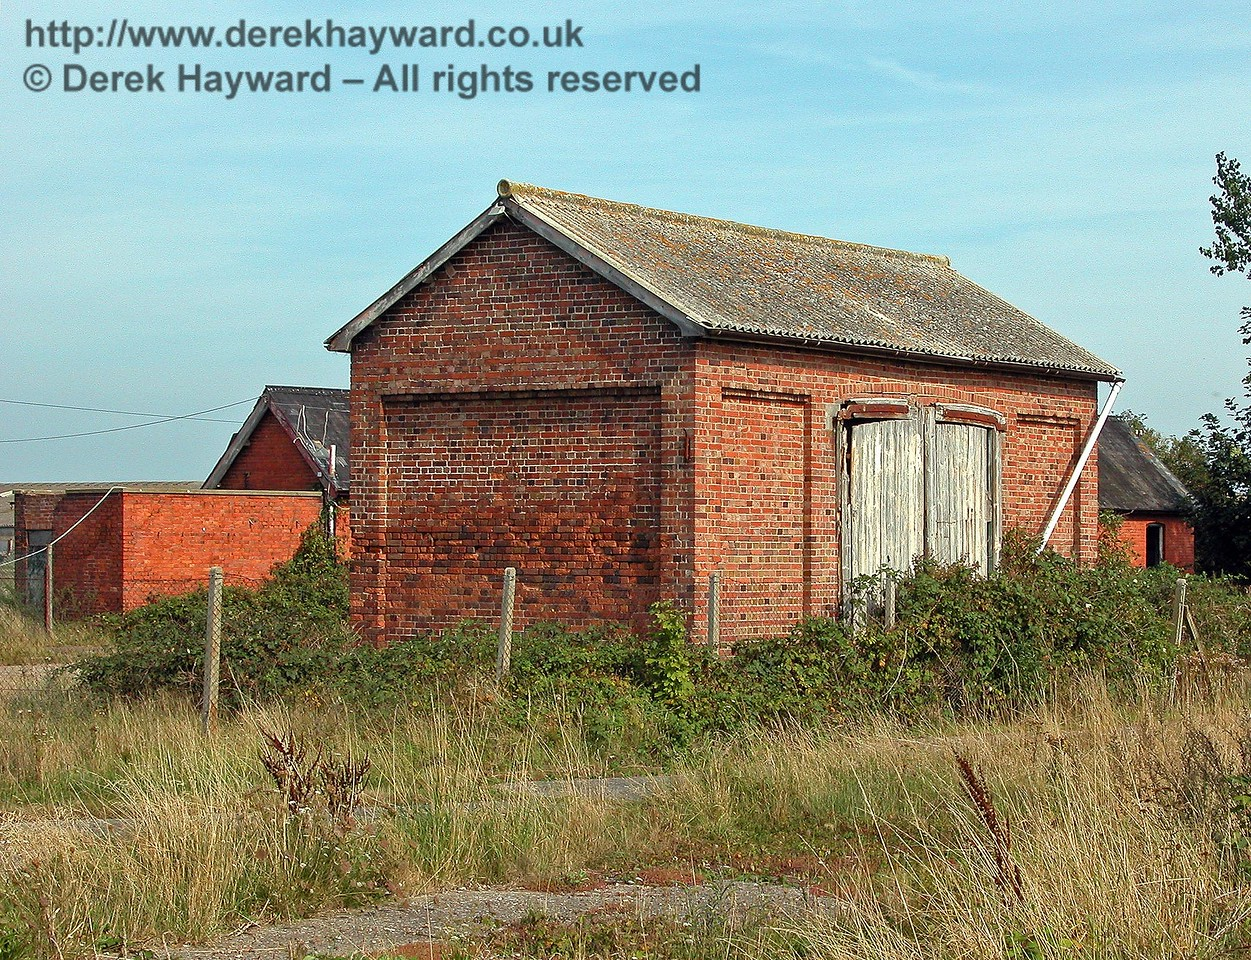 The other side of Lydd Town goods shed also pictured on 02.09.2005.  Vehicles collected goods from the double doors.